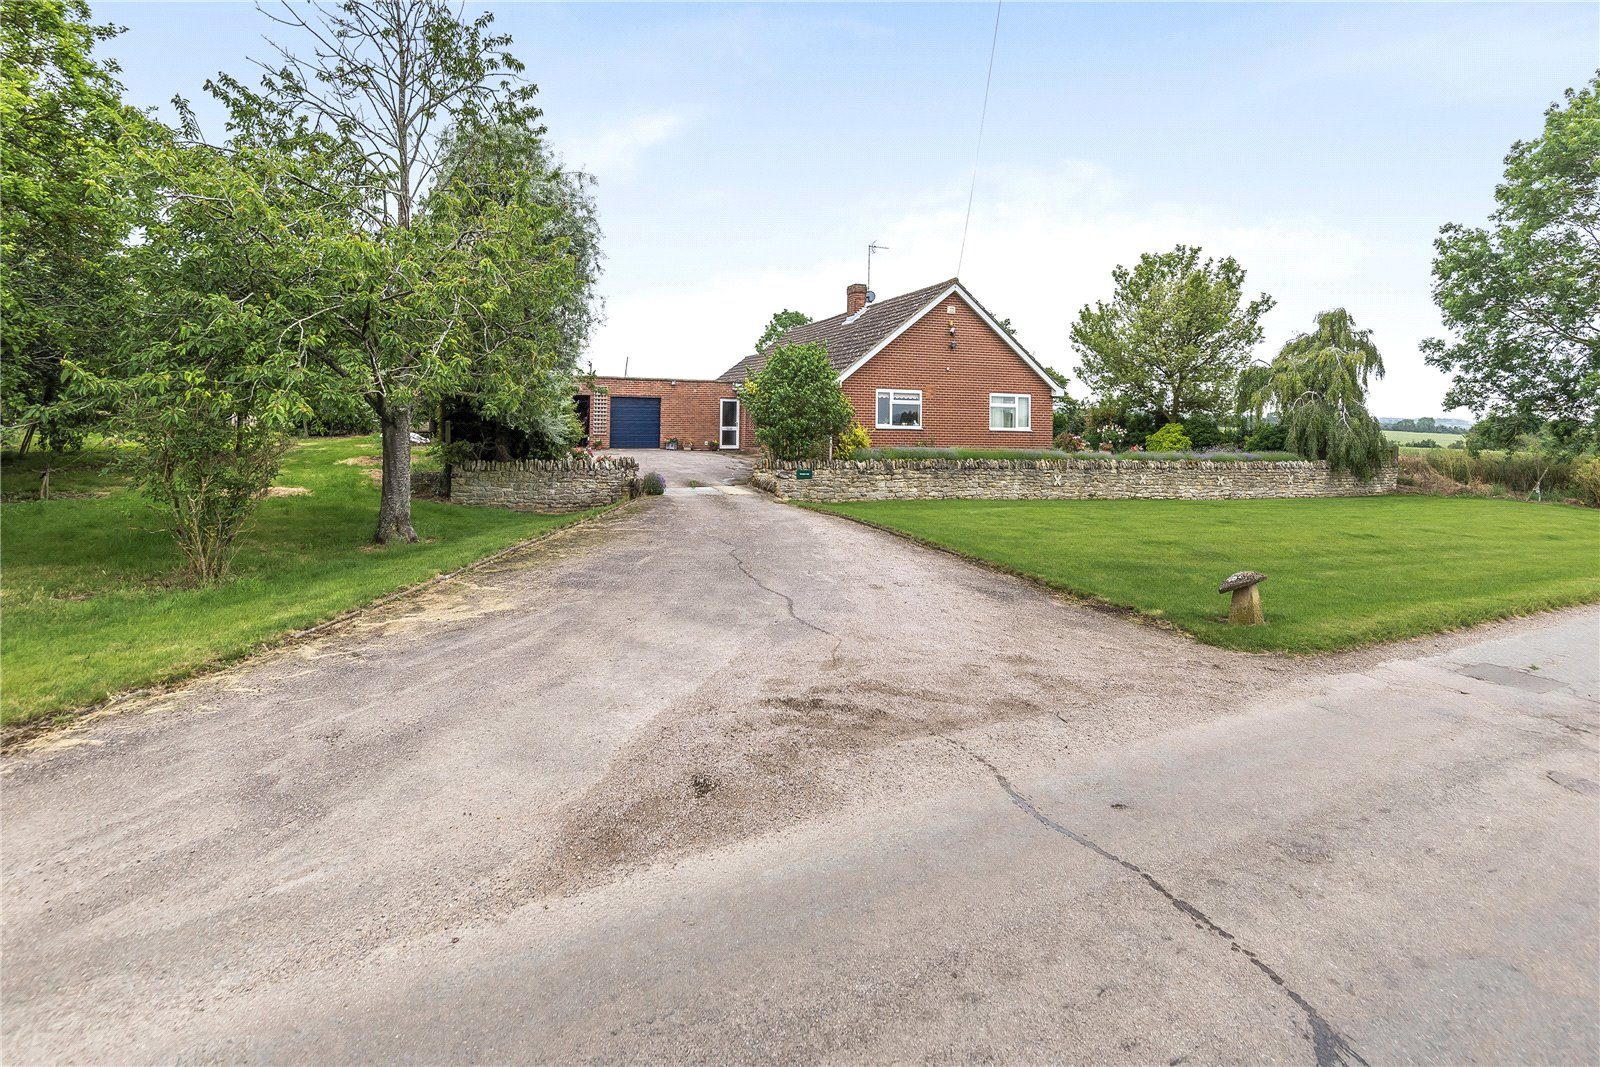 3 bed bungalow for sale in Wintringham, St. Neots - Property Image 1